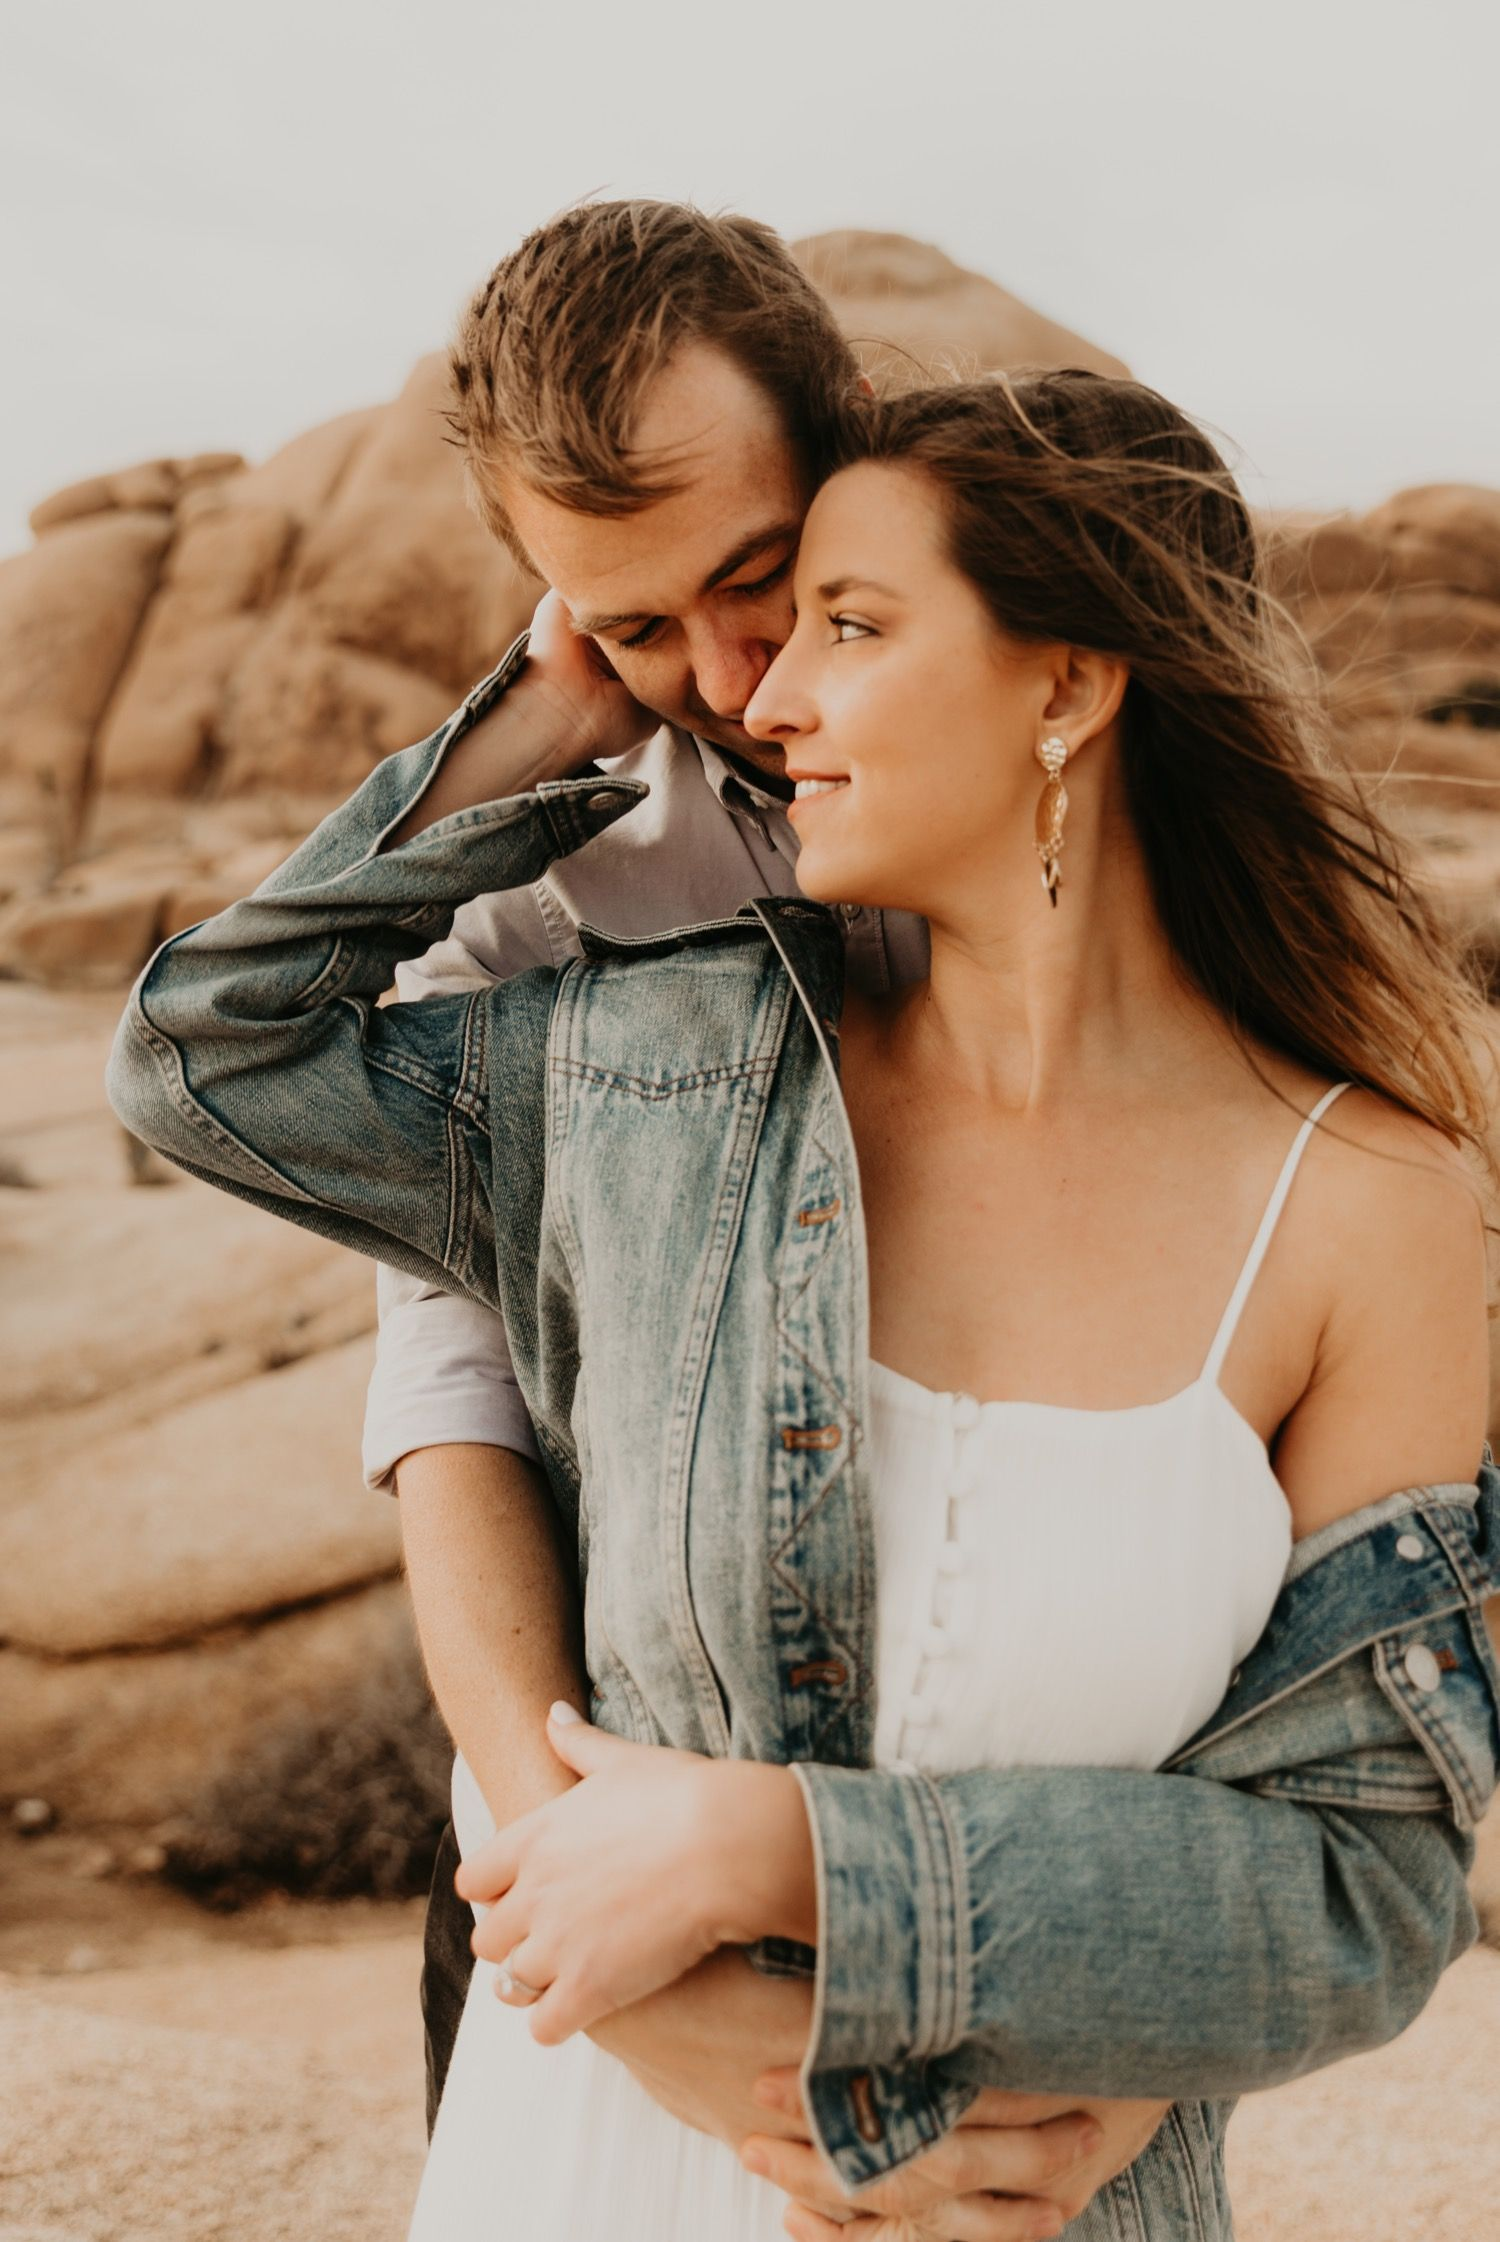 Joshua tree engagement photos -winter engagement photo outfit inspiration -  Jos... -  Joshua tree engagement photos -winter engagement photo outfit inspiration –  Jos…#engagement #i - #Engagement #EngagementPhotosafricanamerican #EngagementPhotosbeach #EngagementPhotoscountry #EngagementPhotosfall #EngagementPhotosideas #EngagementPhotosoutfits #EngagementPhotosposes #EngagementPhotosspring #EngagementPhotoswinter #EngagementPhotoswithdog #inspiration #Jos #Joshua #Outfit #PHOTO #Photos #summe